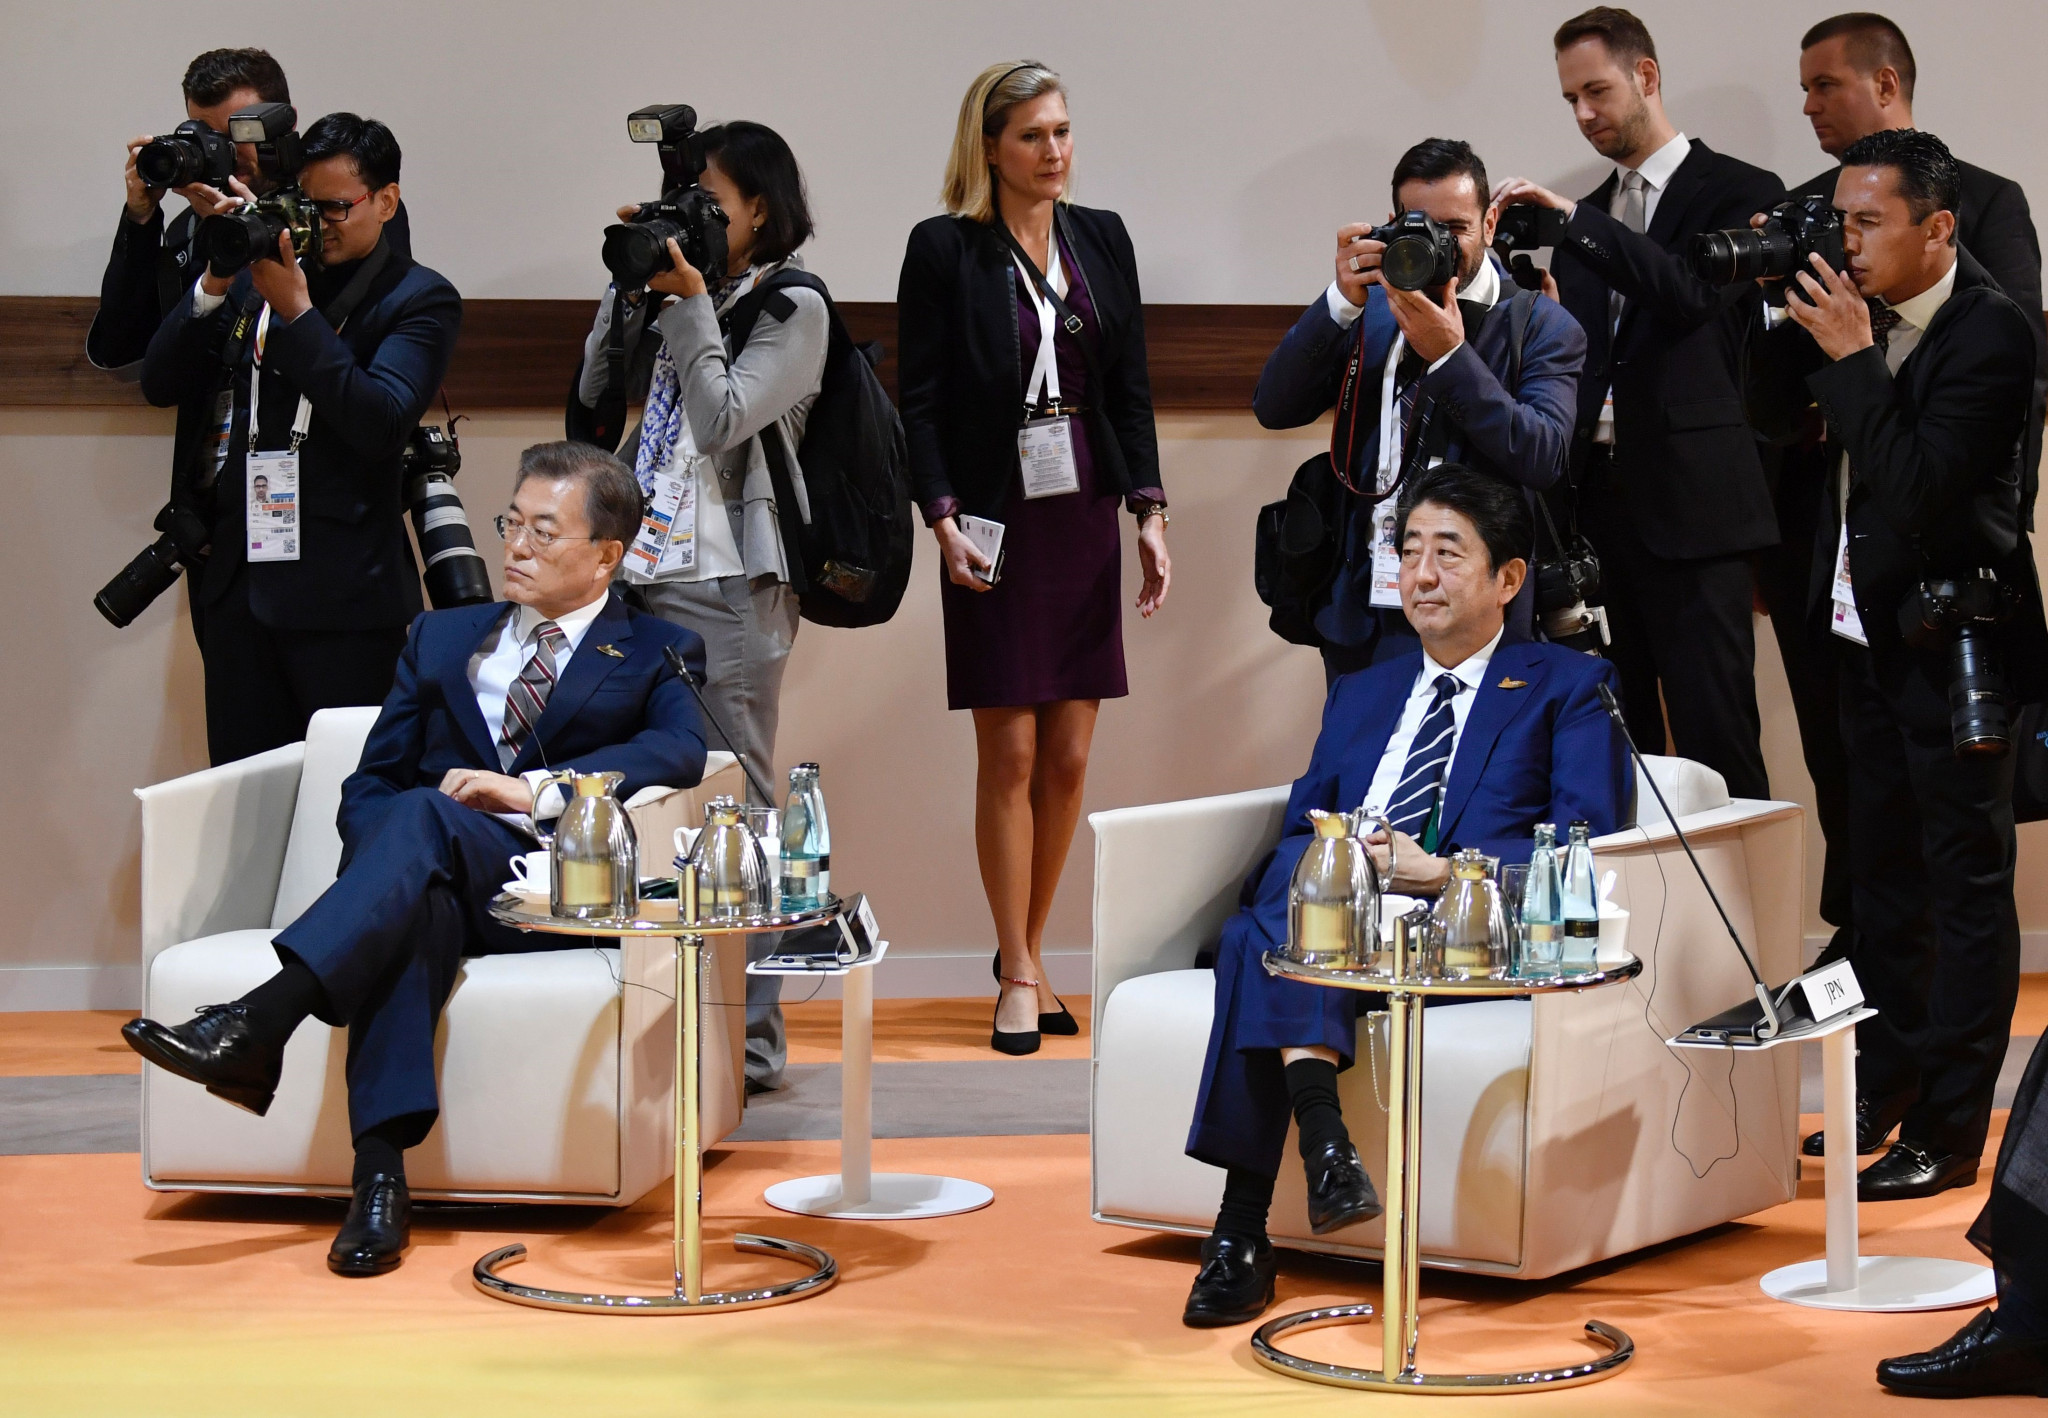 The administration of South Korea President Moon Jae-in, left, invited Shinzō Abe, right, to attend the Pyeongchang 2018 Opening Ceremony ©Getty Images